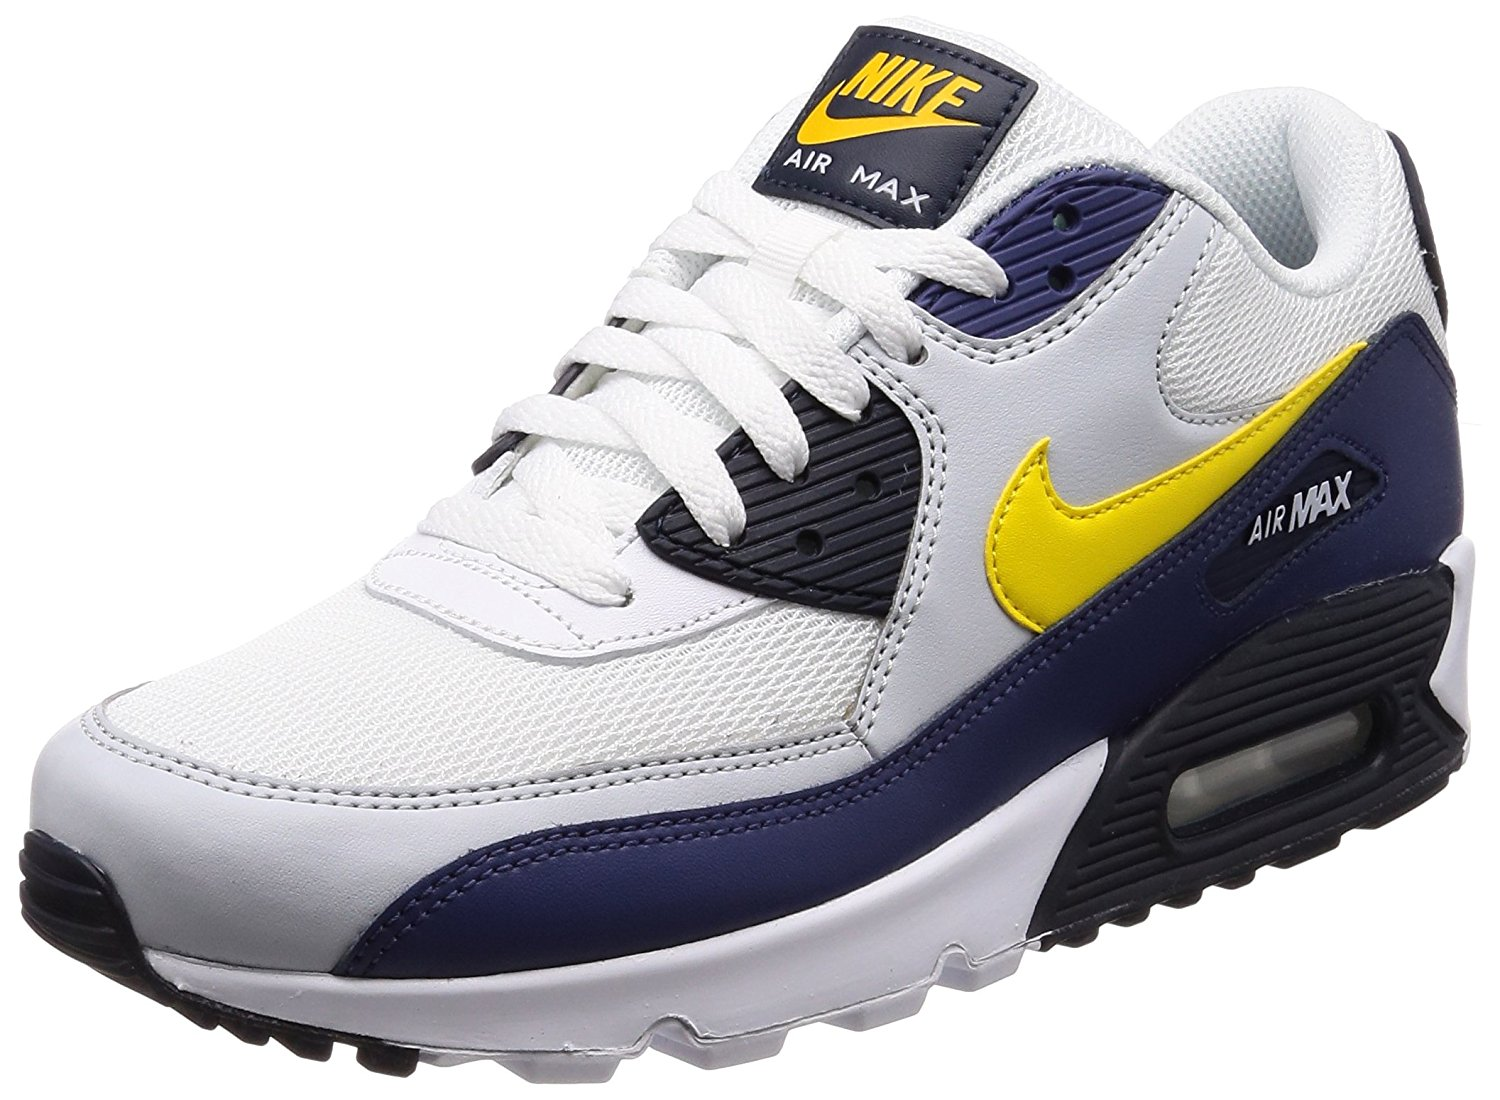 6f917fe8af Nike Air Max 90 Reviewed for Performance in 2019 | WalkJogRun